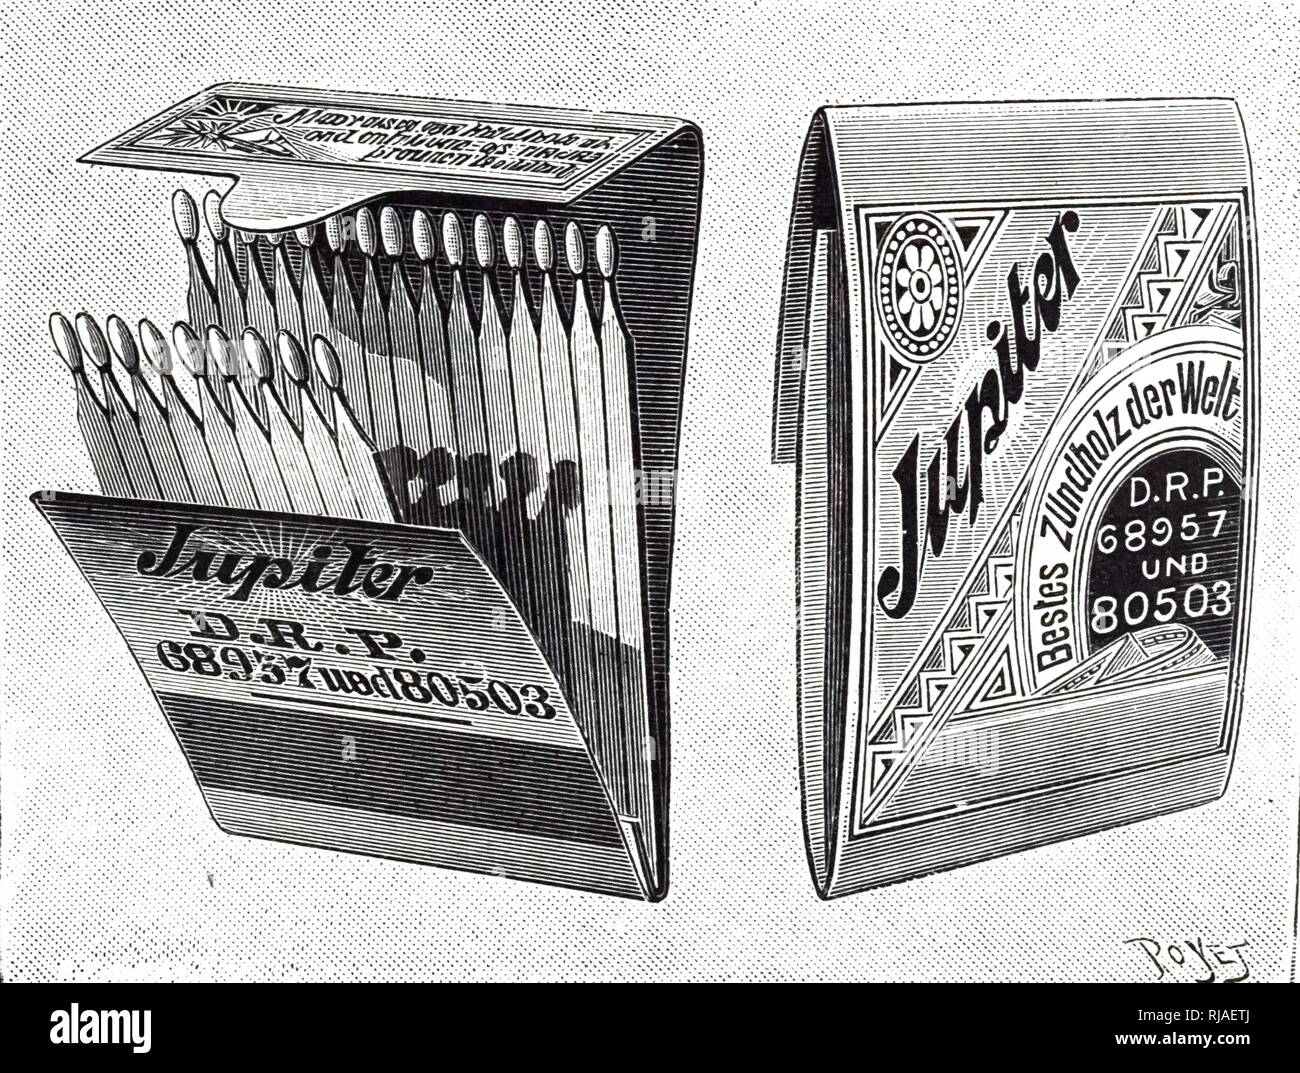 An engraving depicting a book of safety matches, which were much safer and more convenient than earlier non-safety matches and a vast improvement on the 'Promethean' matches which needed to be dipped into a portable phial of sulphuric acid. Dated 19th century - Stock Image